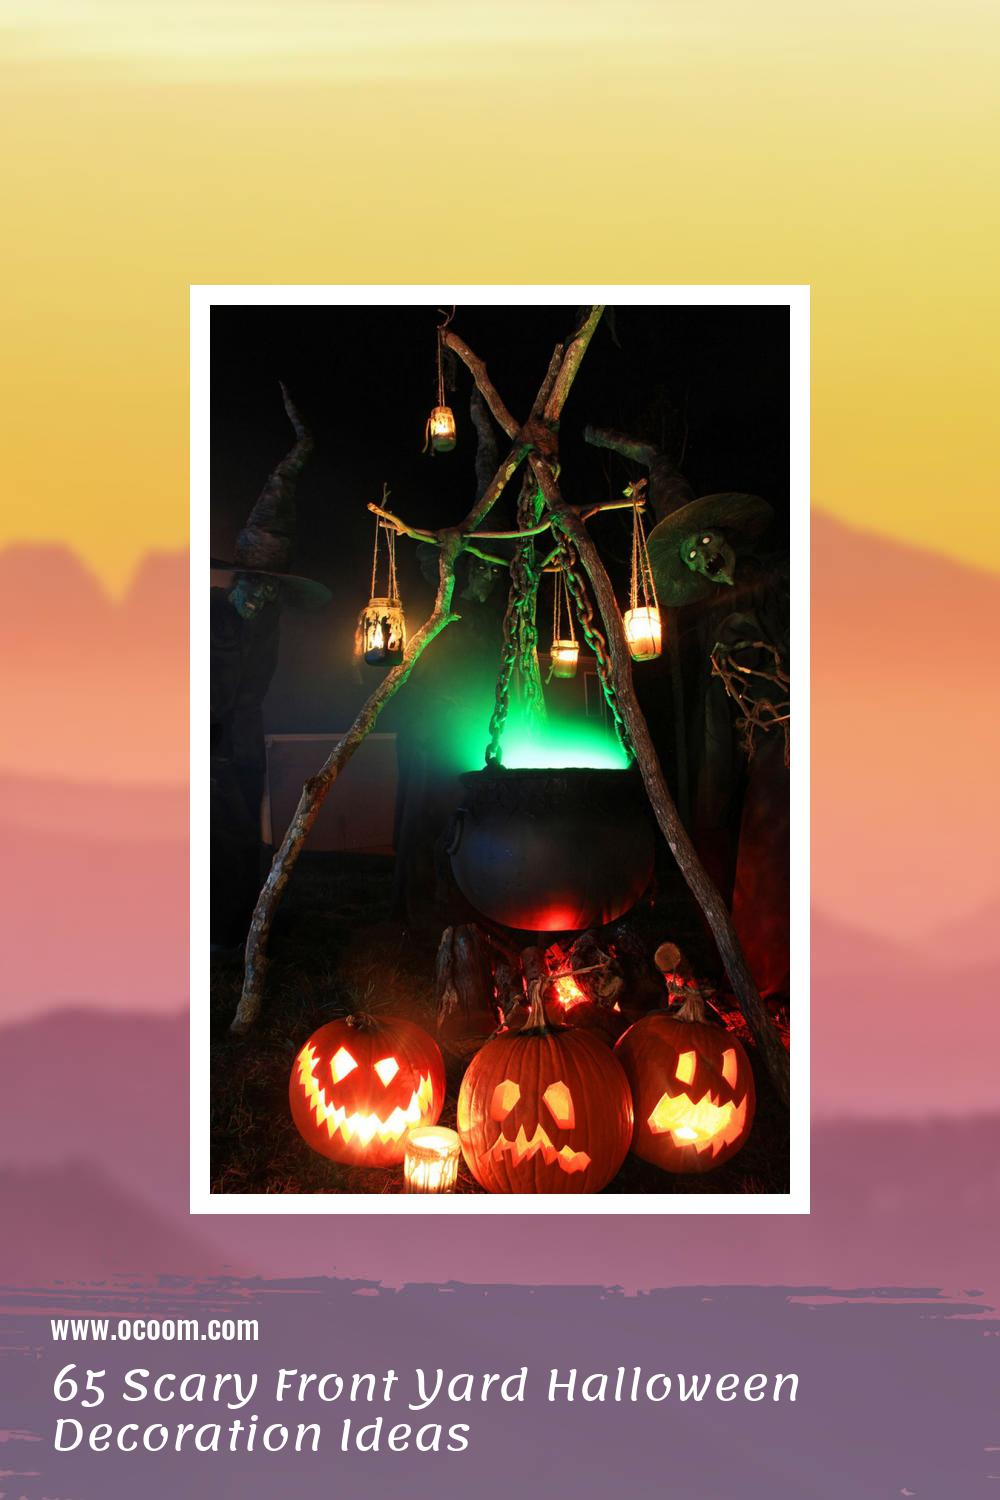 65 Scary Front Yard Halloween Decoration Ideas 59